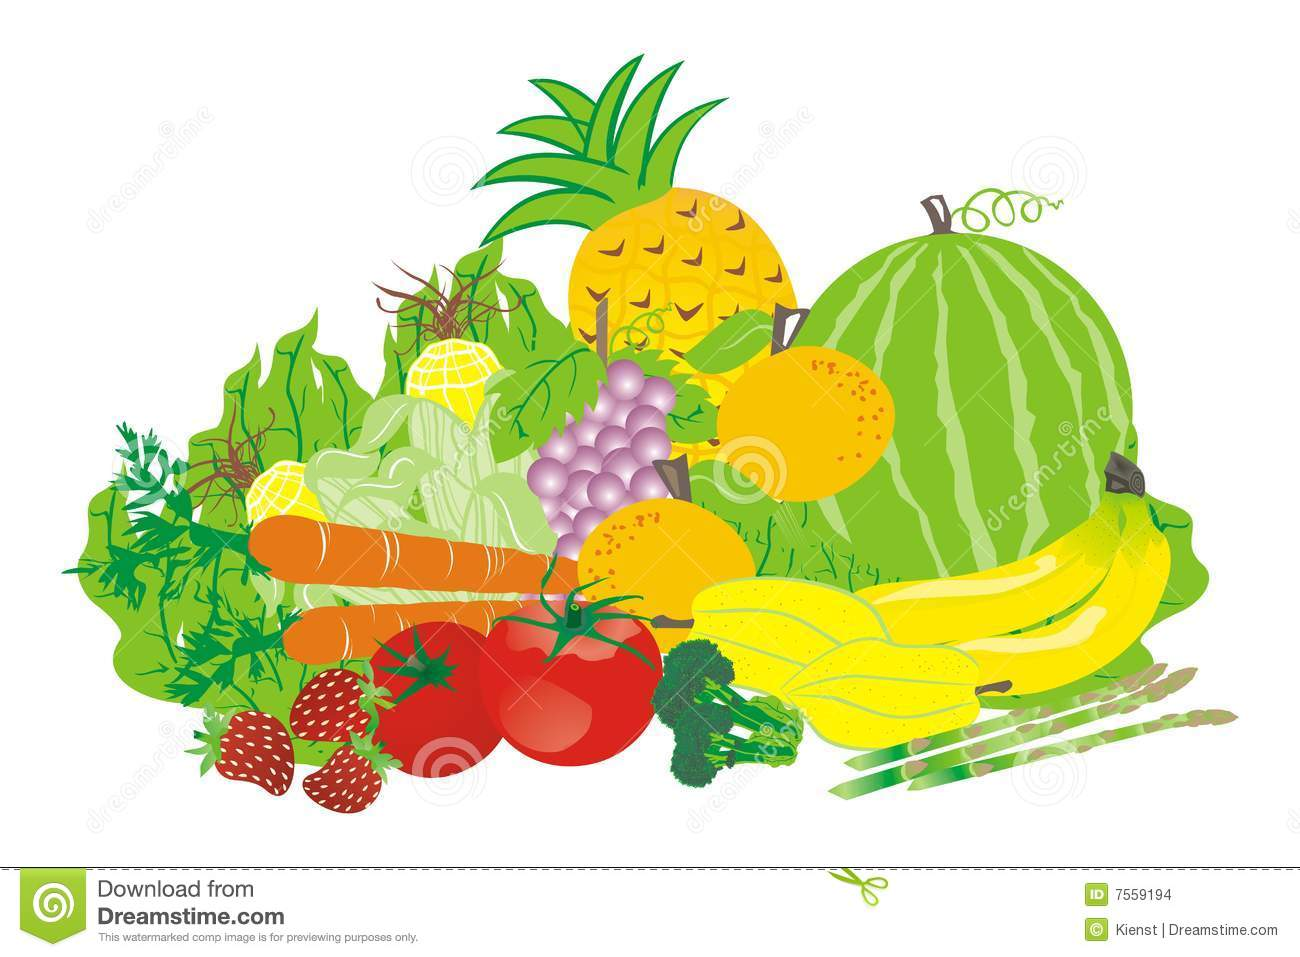 Obst und gemse clipart freeuse download Strawberry Plant Stock Illustrations – 4,333 Strawberry Plant ... freeuse download